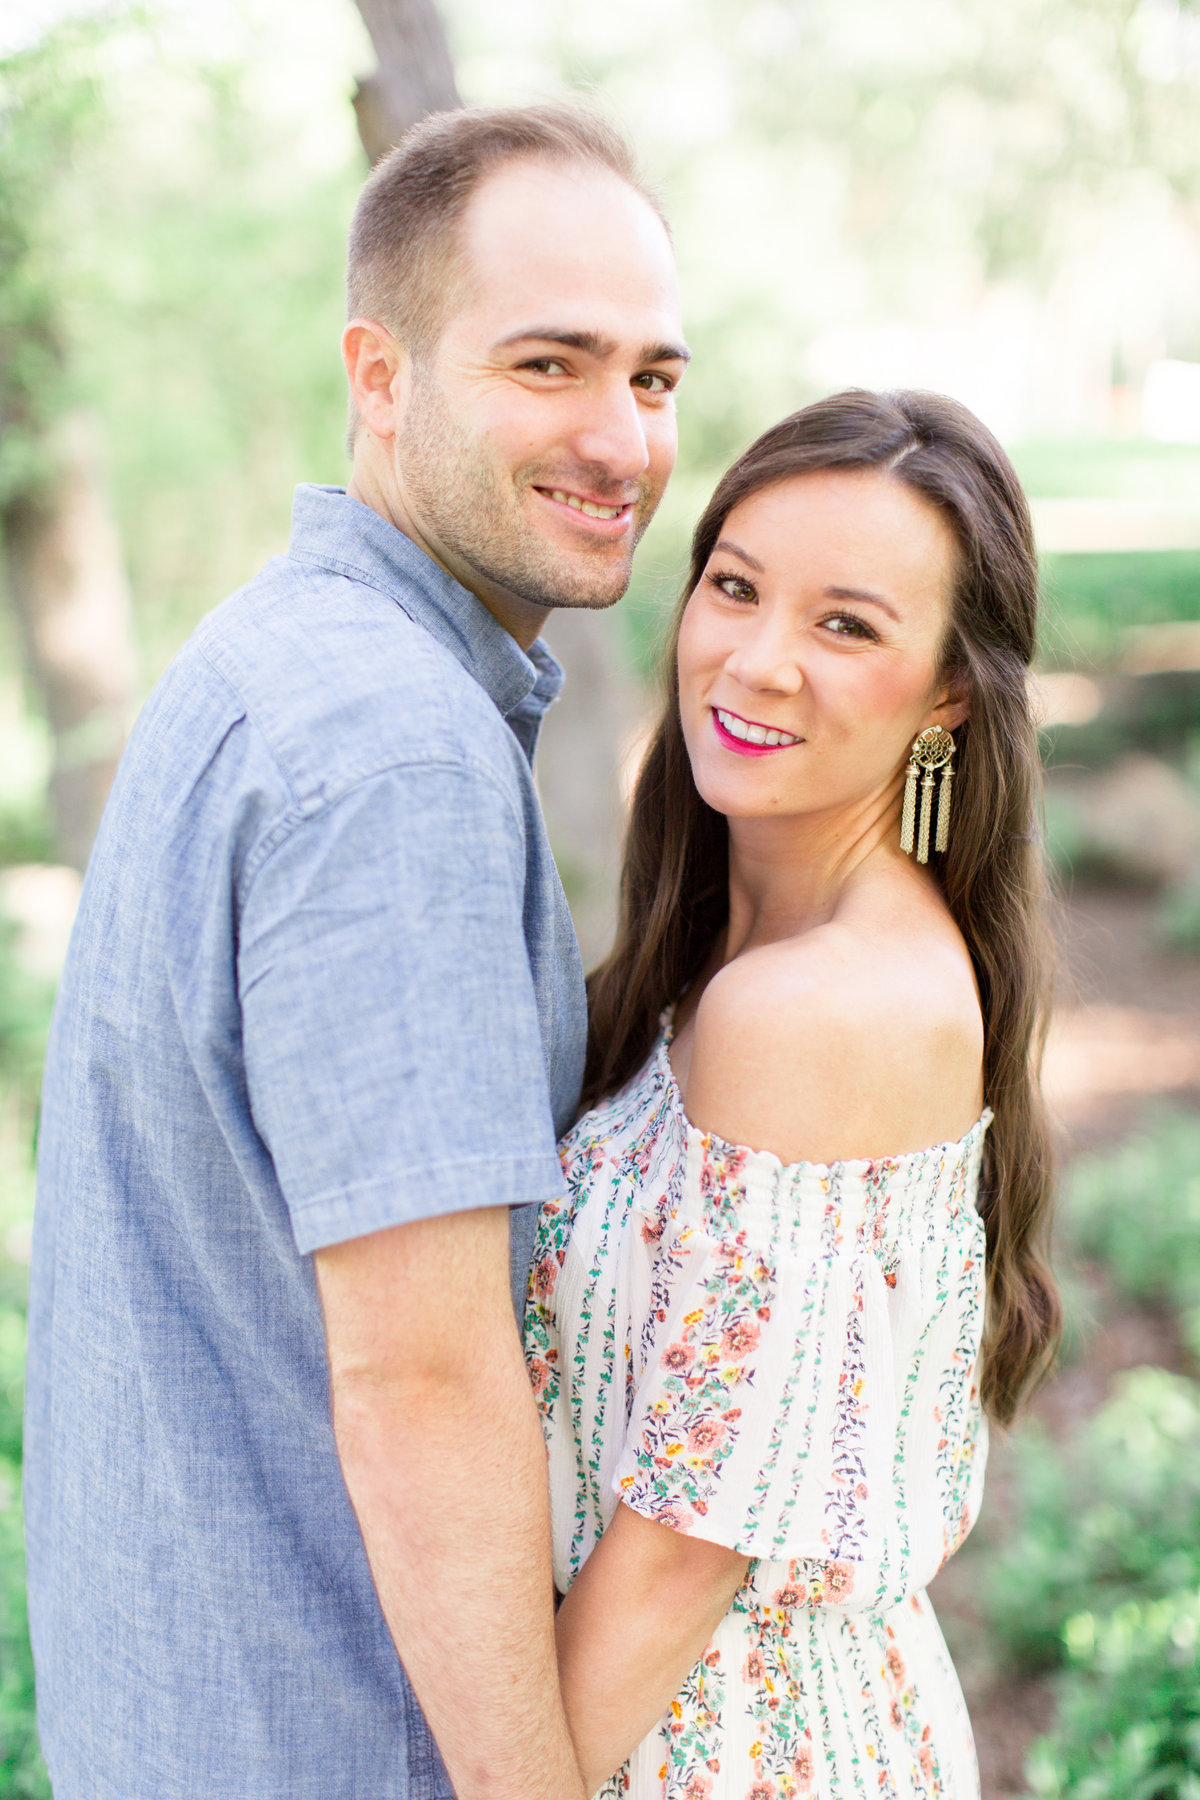 Dallas Portrait Photographer | Sami Kathryn Photography